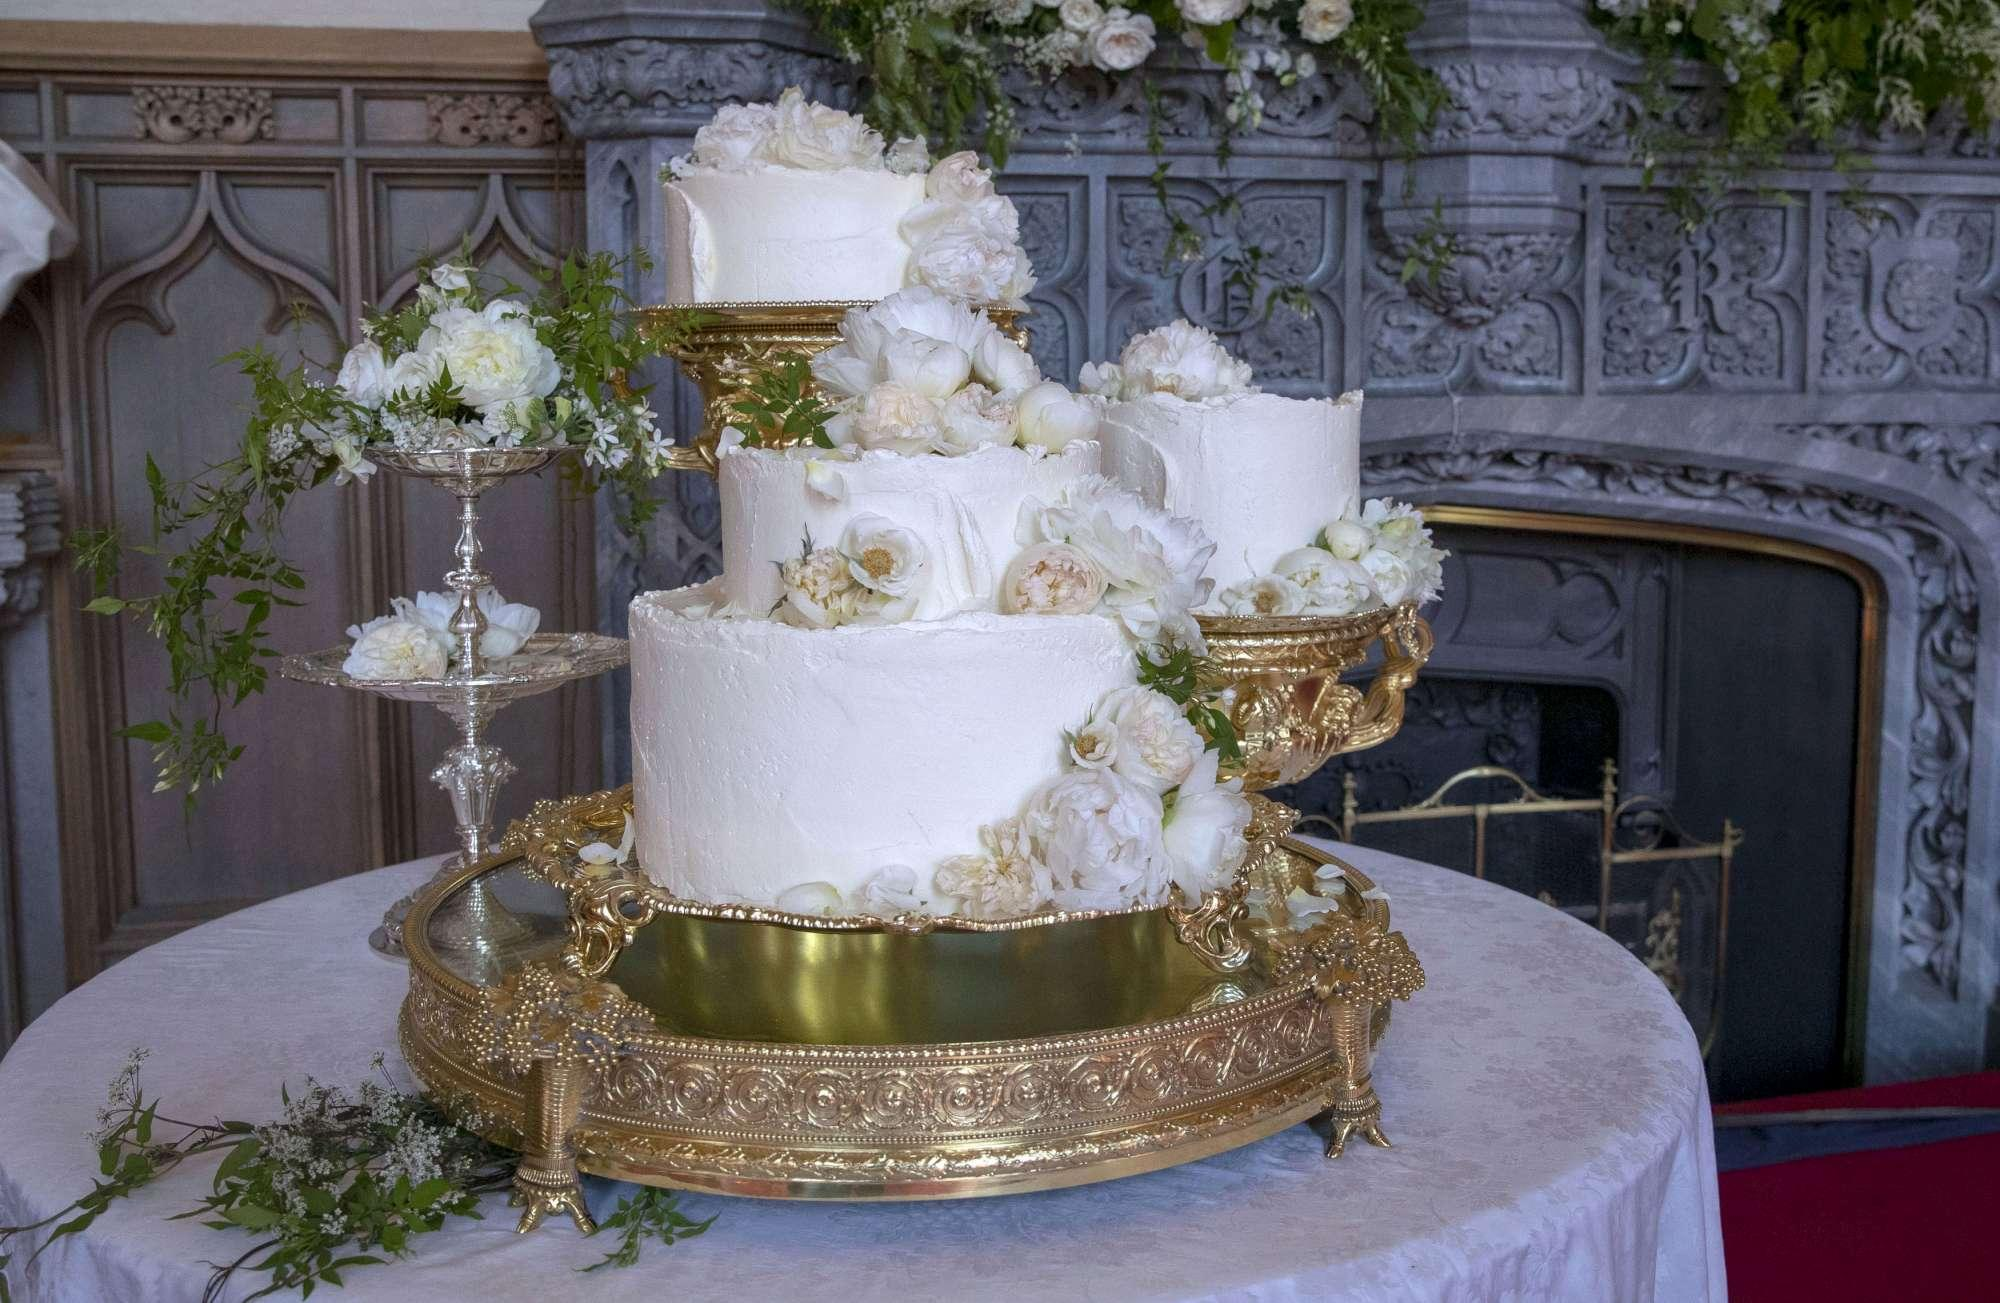 Royal wedding, la torta coi limoni di Amalfi da 50mila sterline